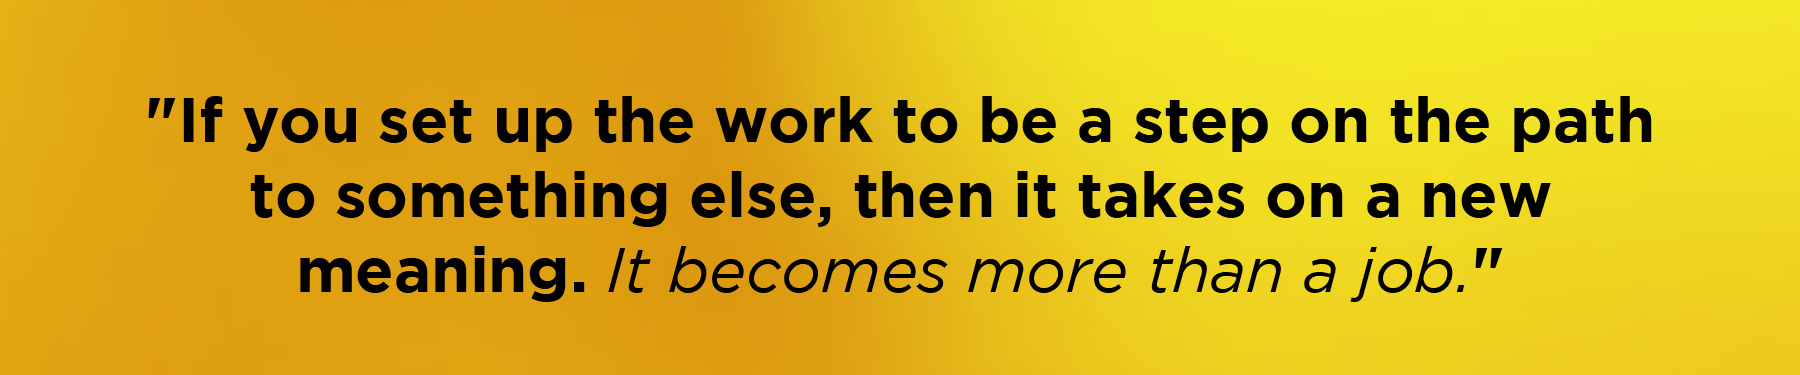 quote(do_away_with_jobs)